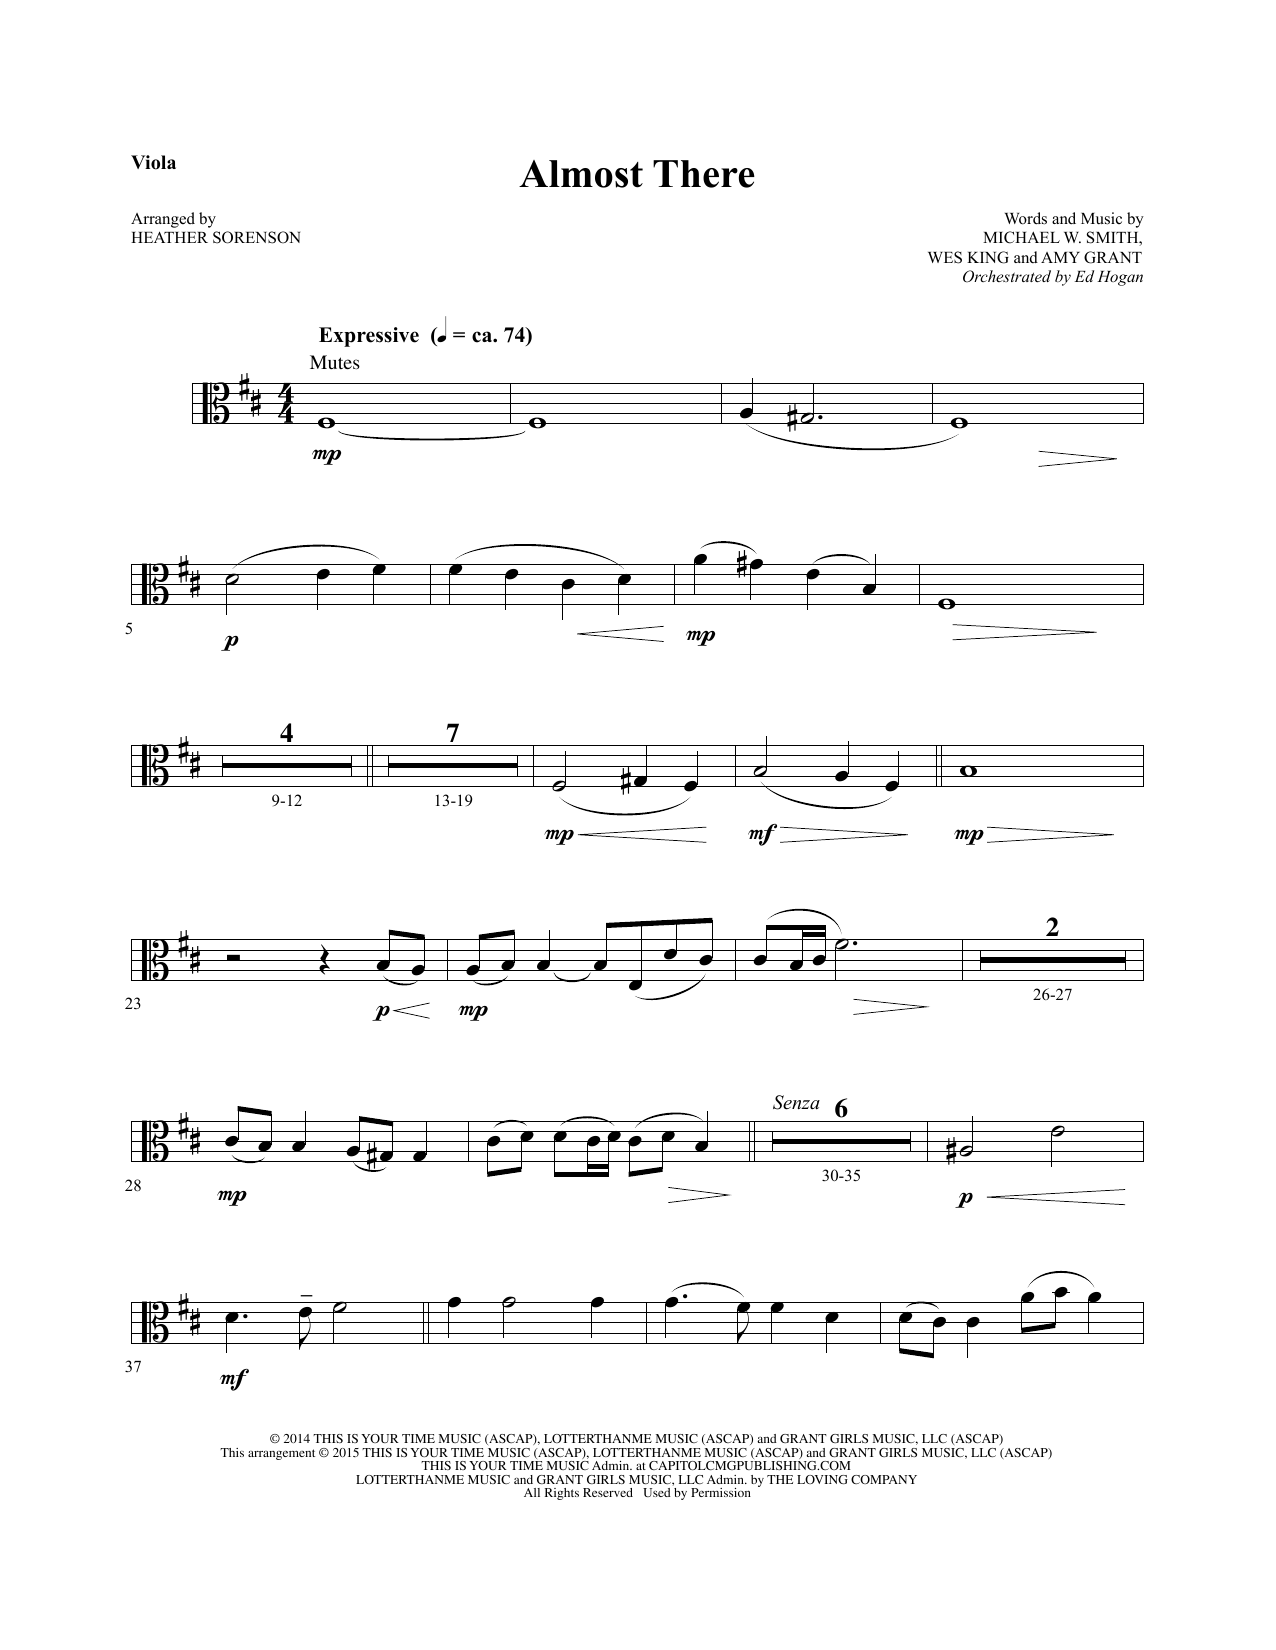 Almost There - Viola sheet music